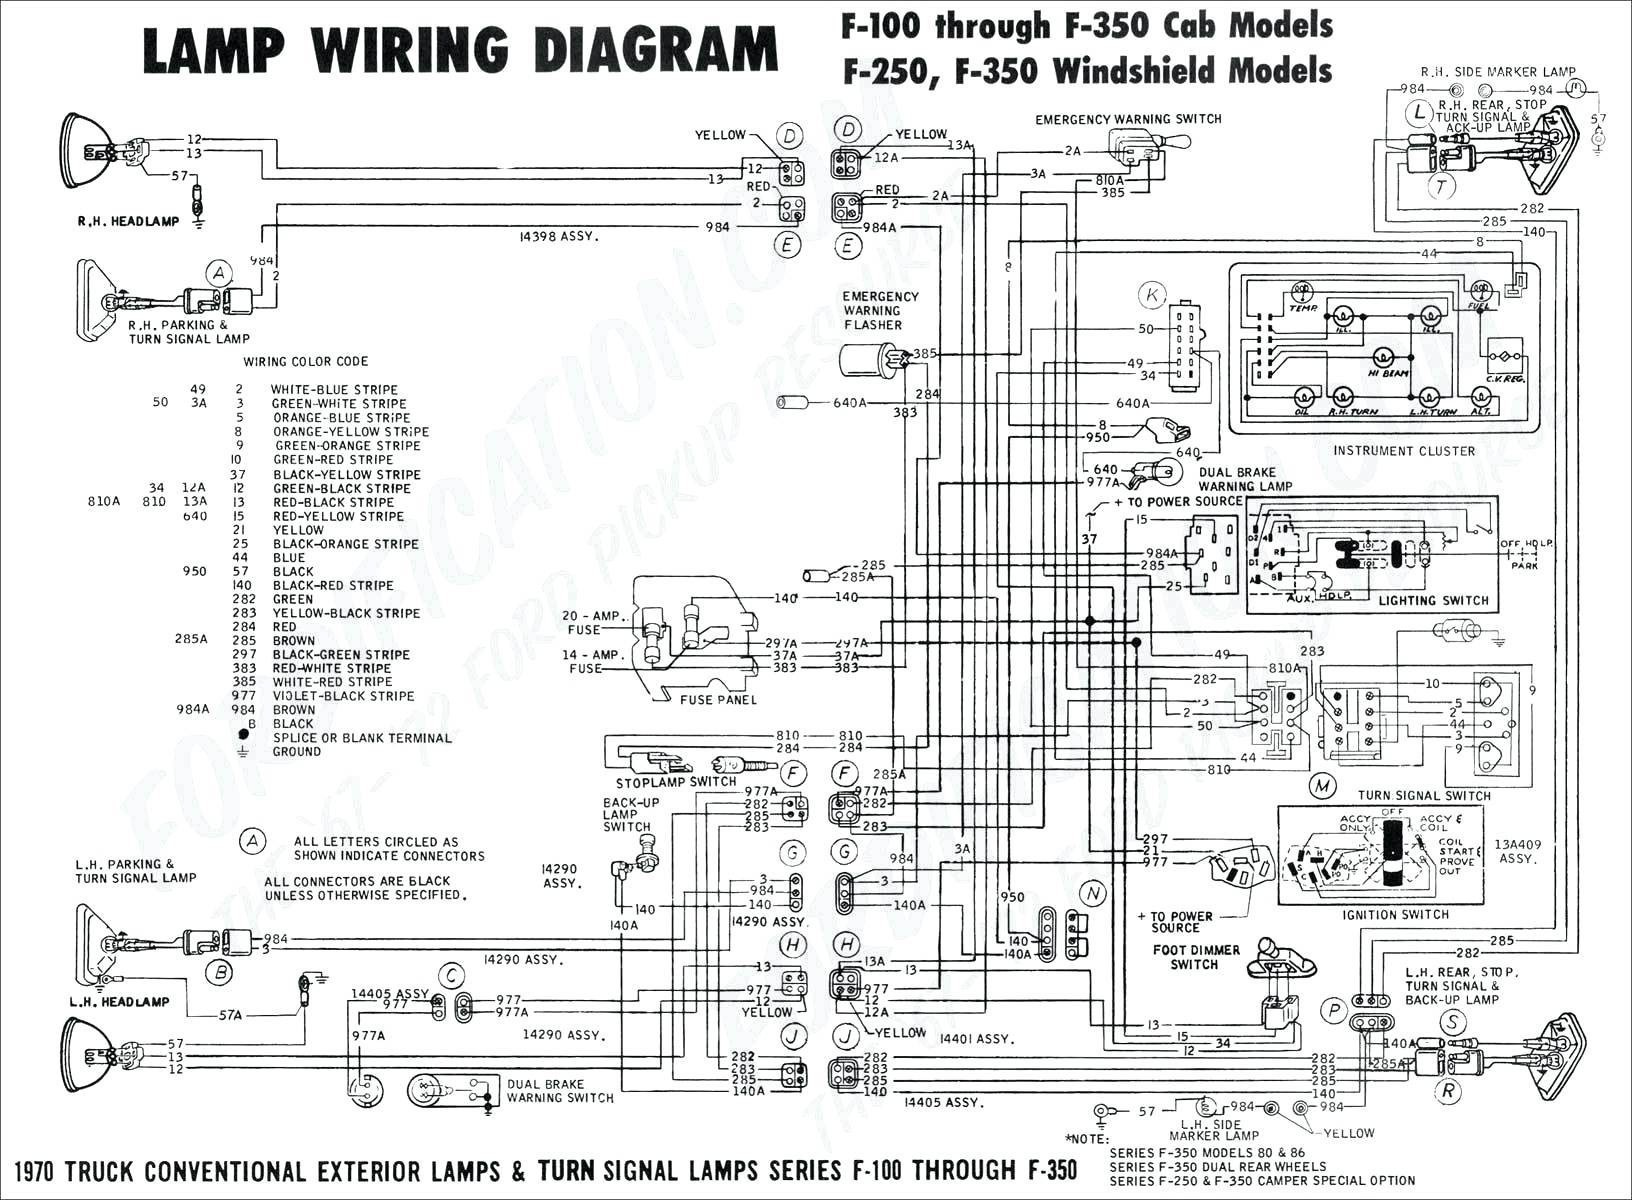 2001 Dodge Ram 1500 Tail Light Wiring Diagram Ethernet End Wiring Diagram